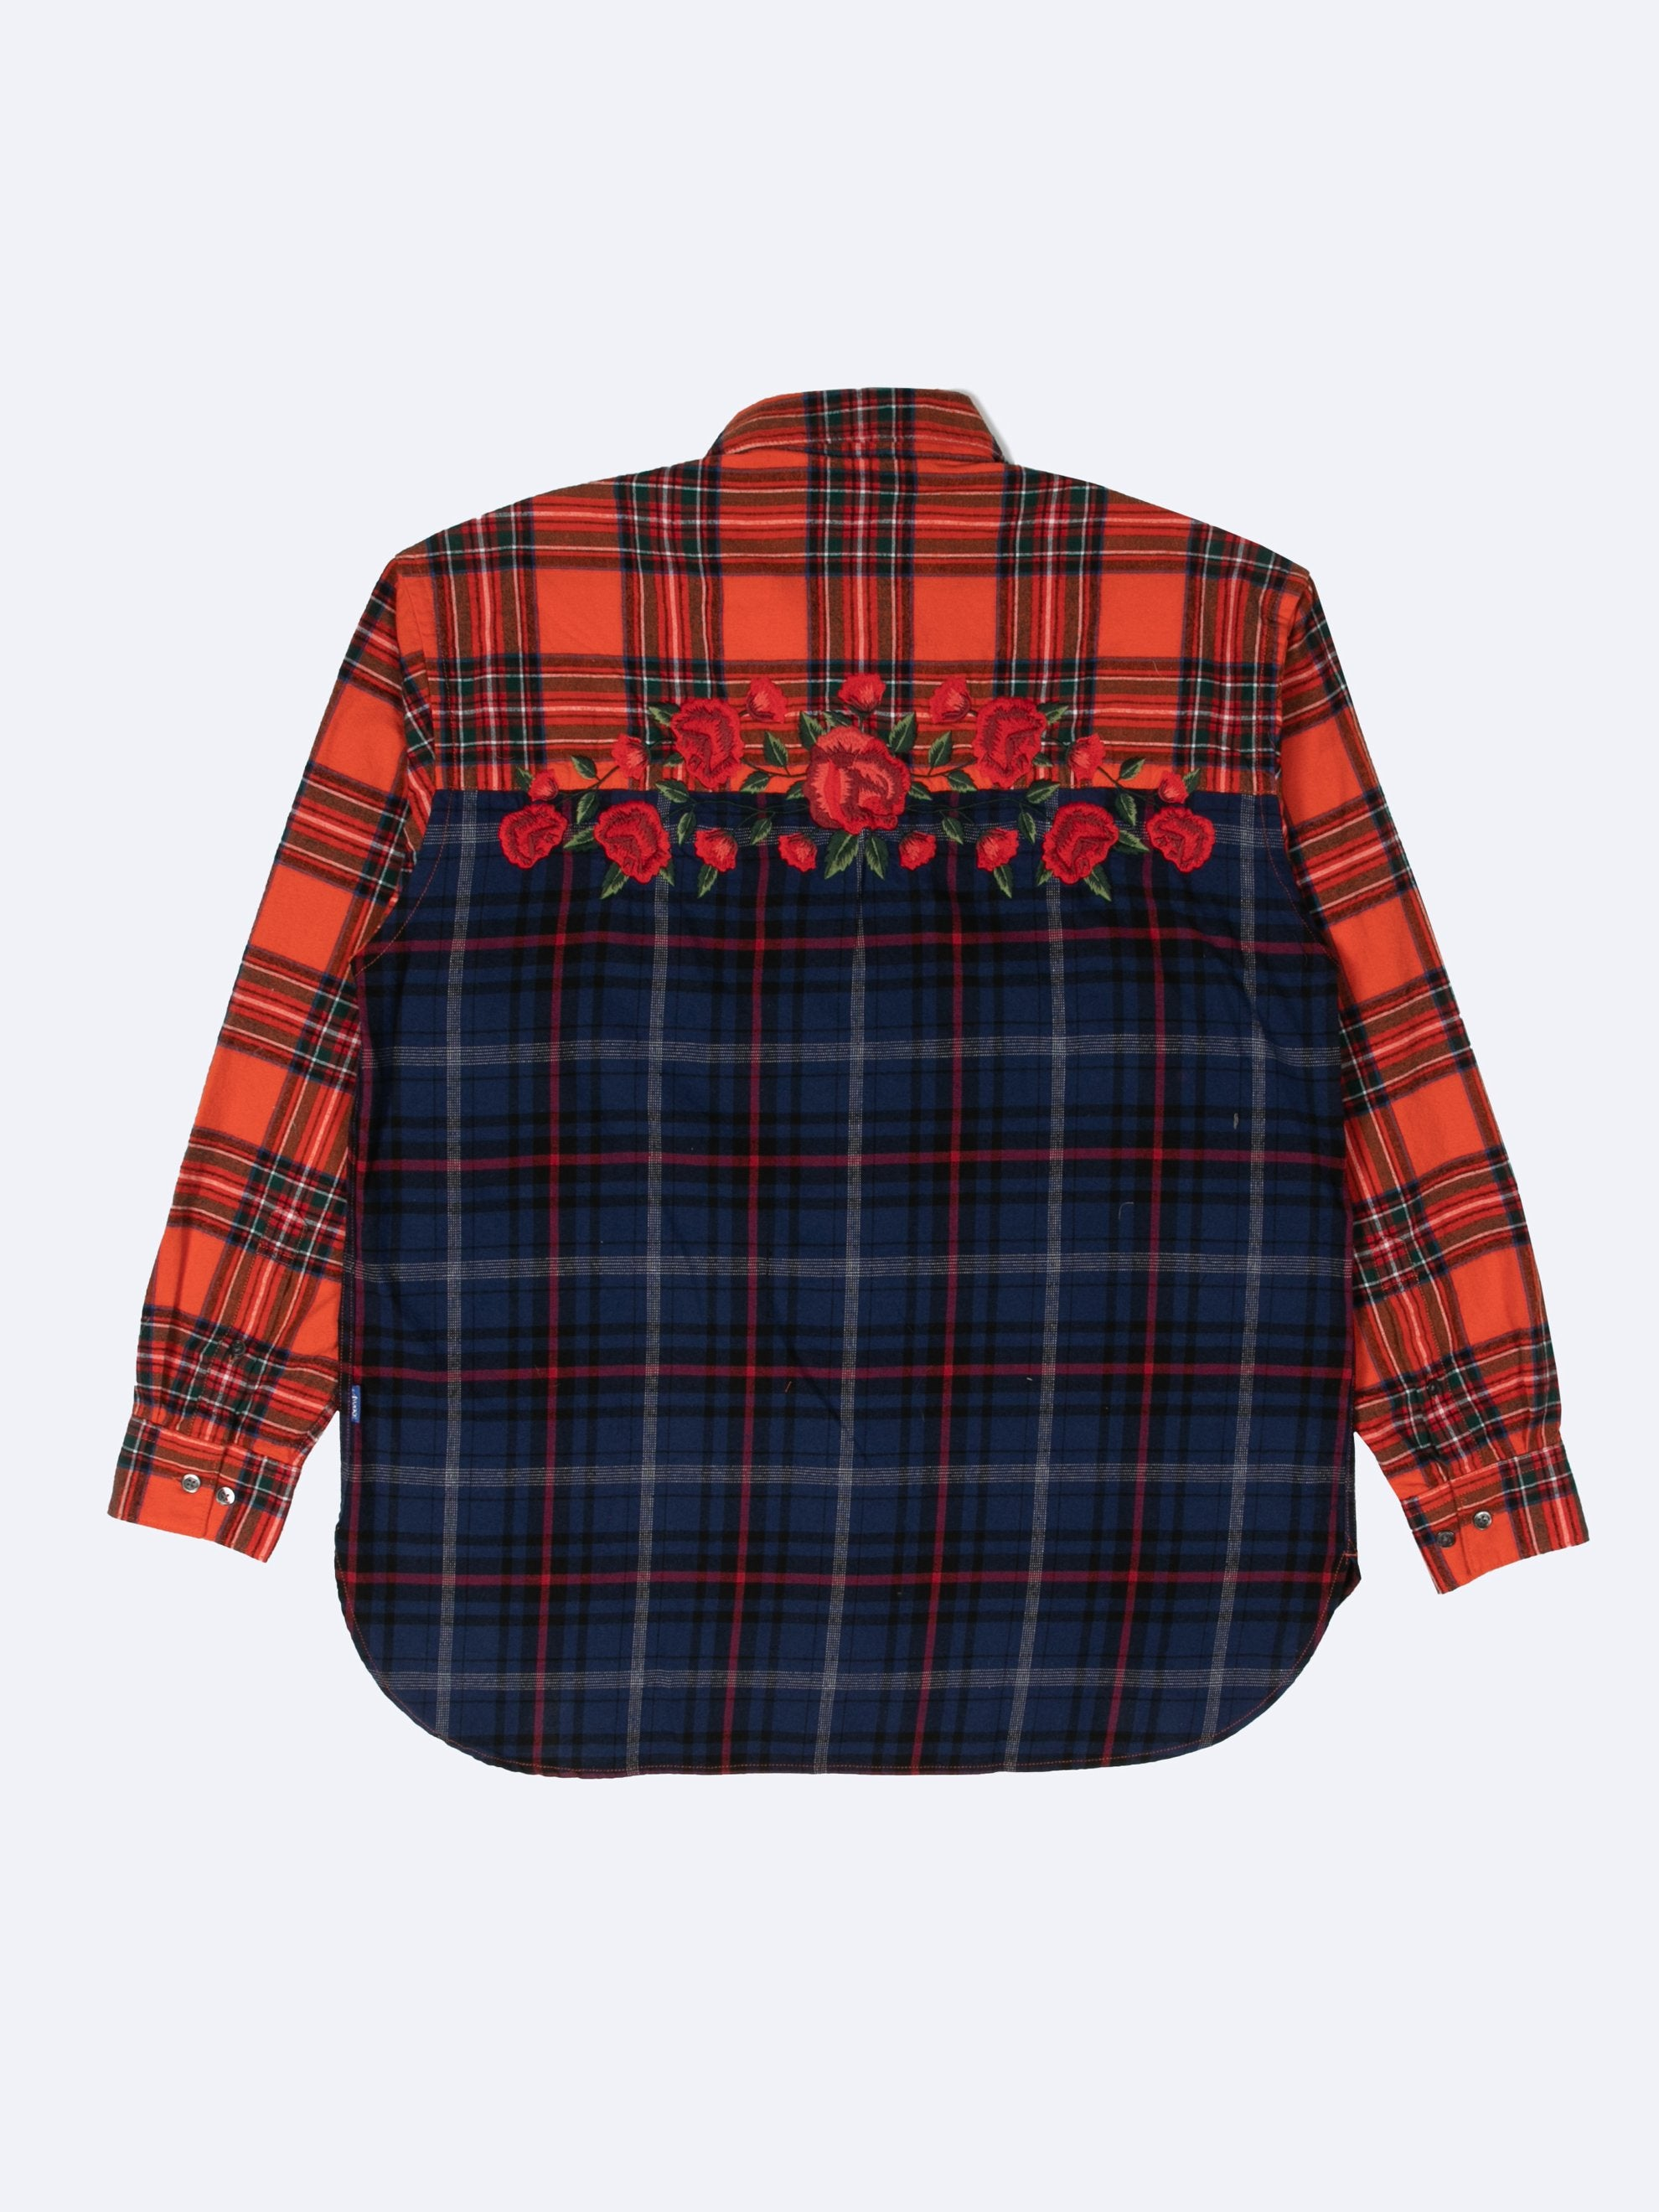 Embroidered Rose Flannel